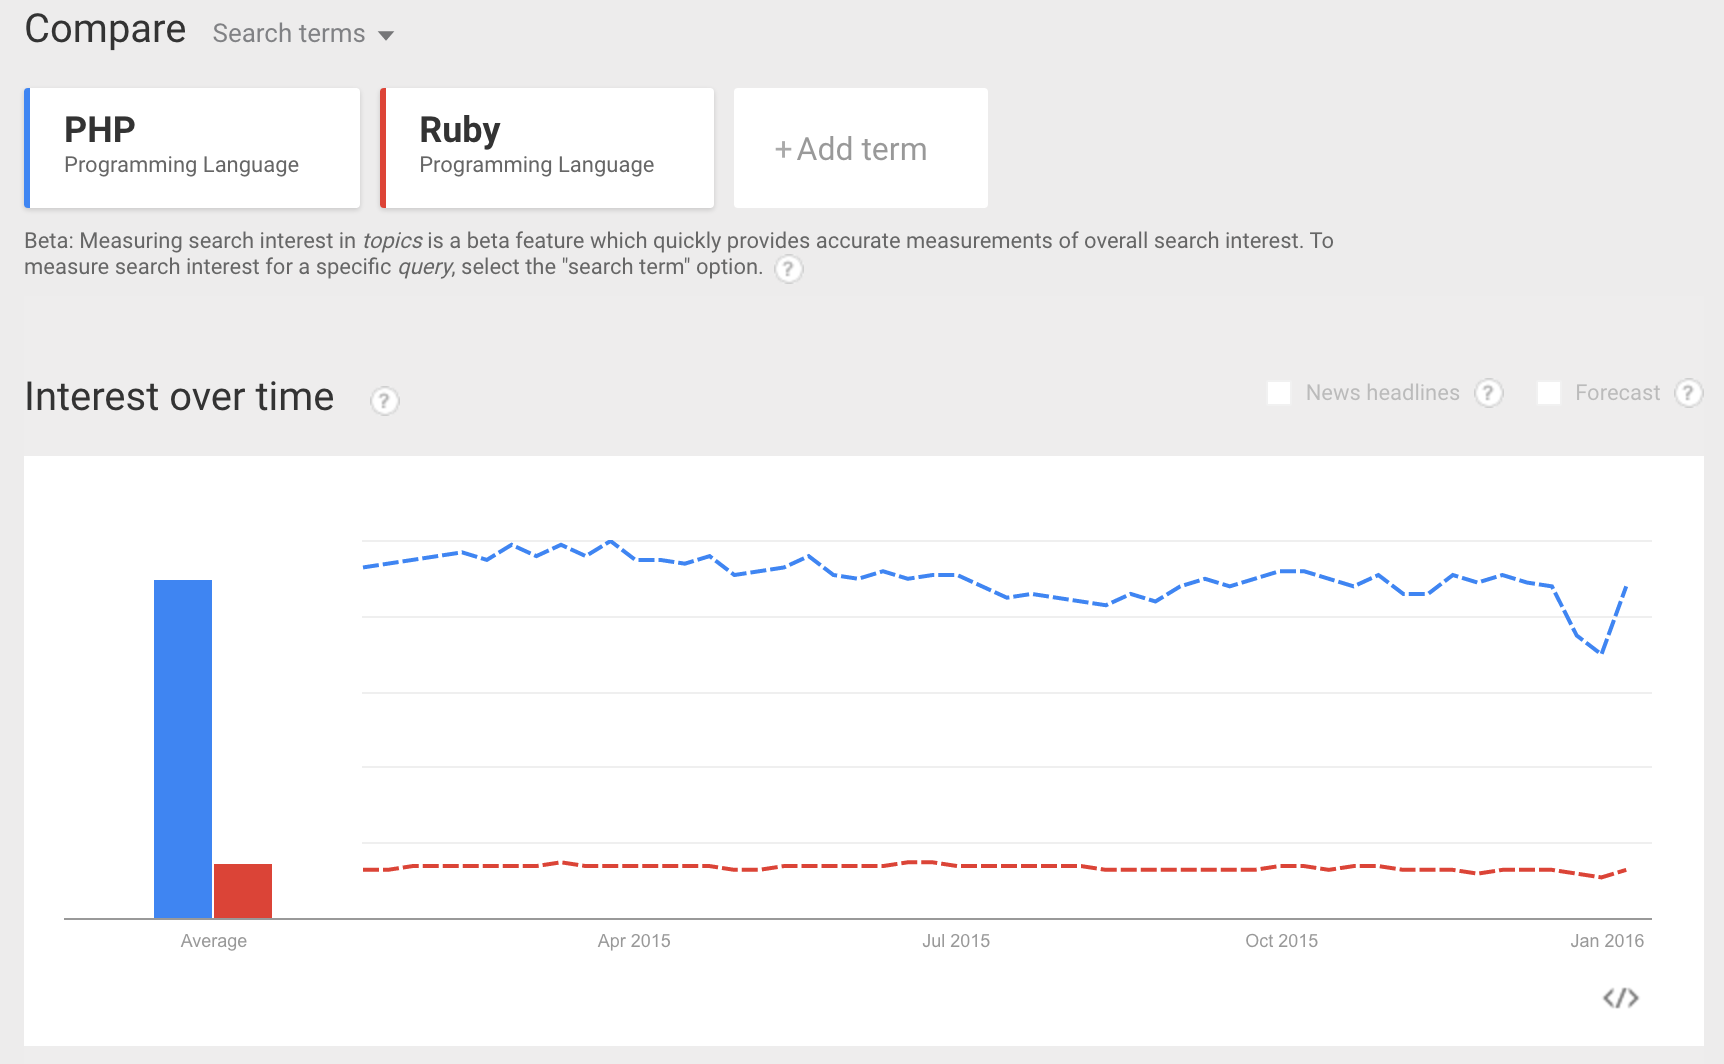 PHP and Ruby interest in google worldwide